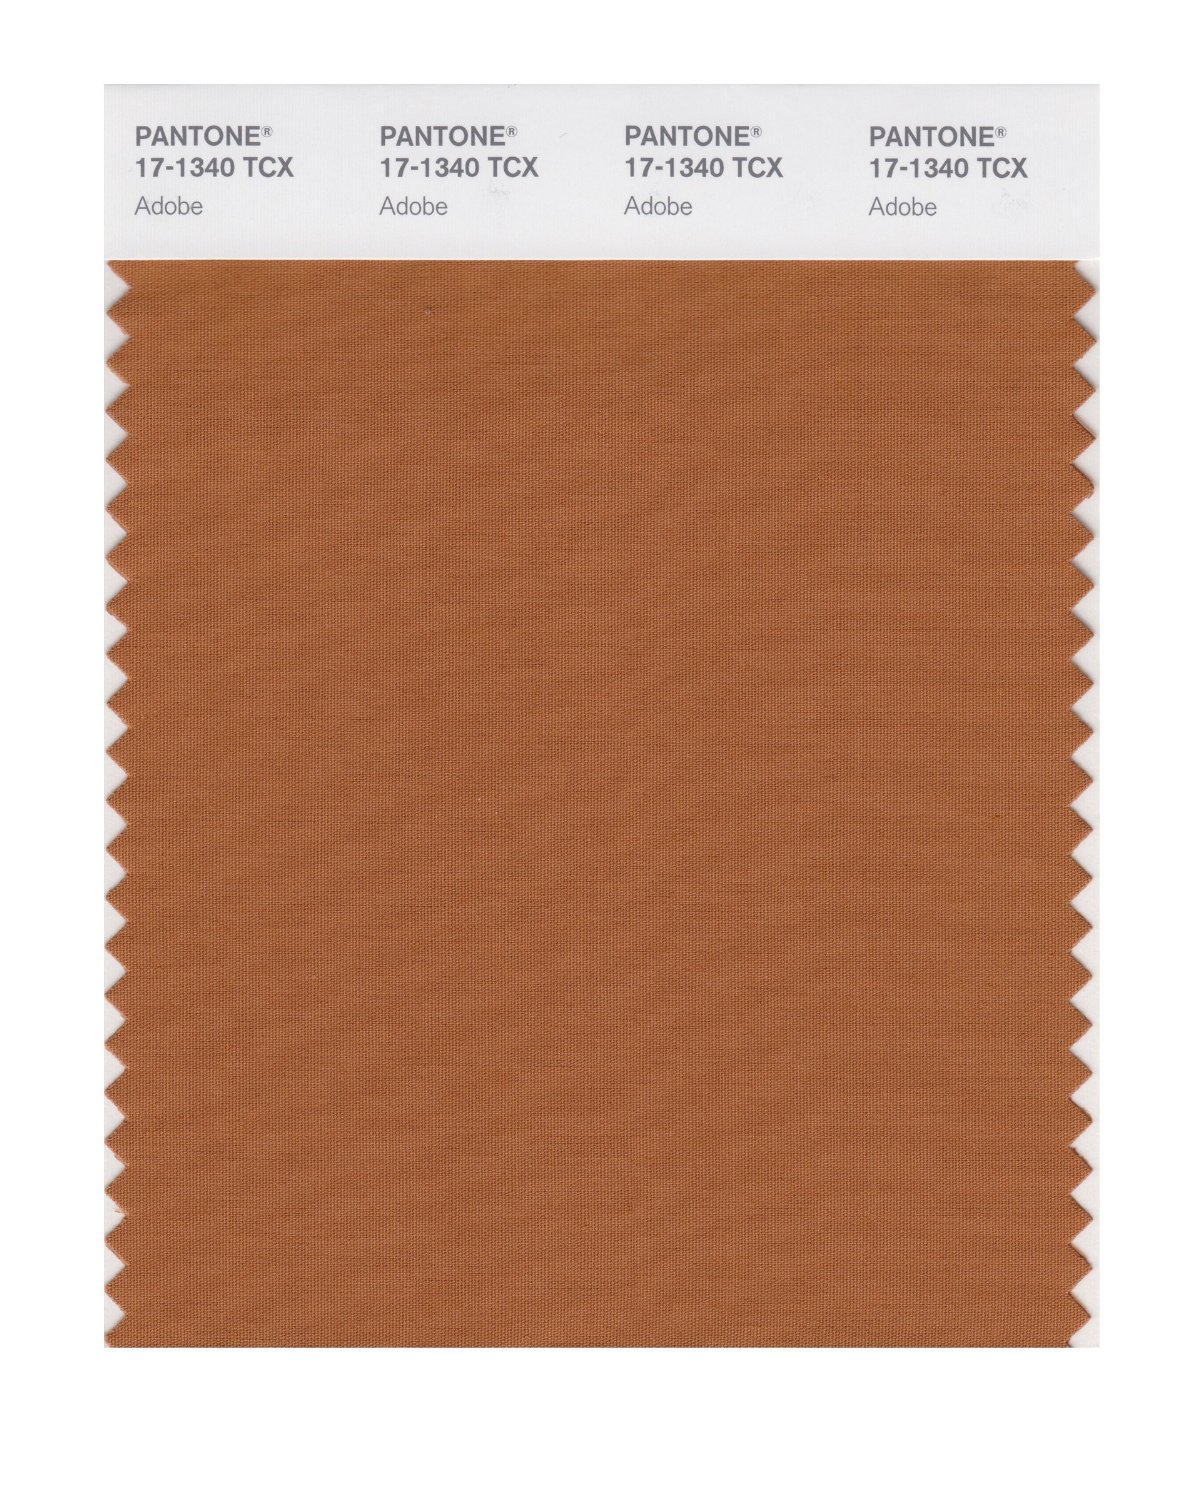 Buy pantone smart swatch 17 1340 adobe for Where to buy pantone paint